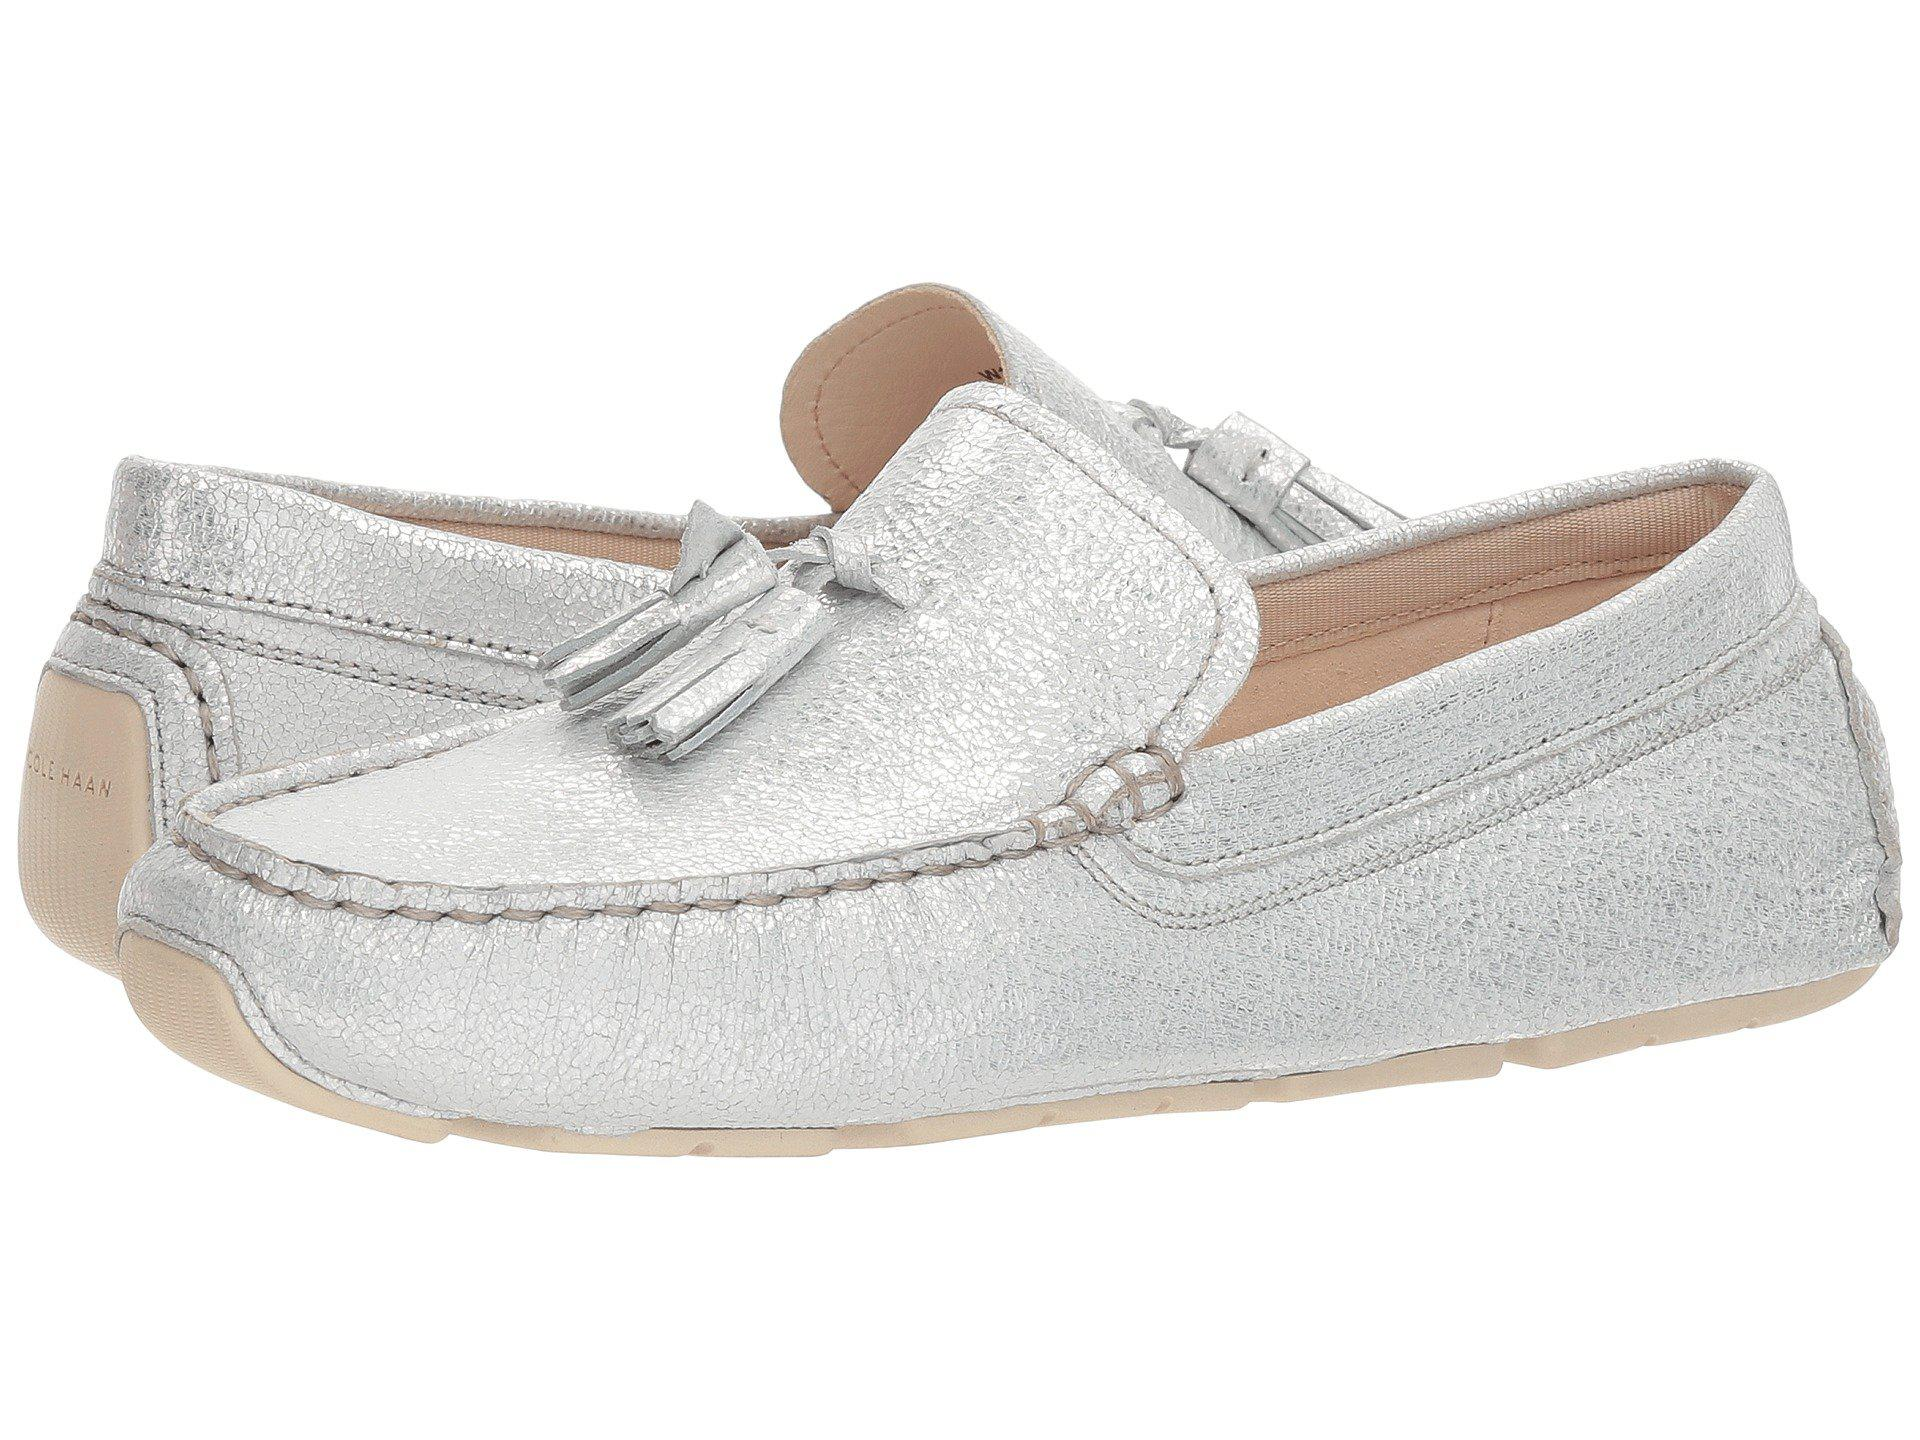 d289a8a5646 Lyst - Cole Haan Rodeo Tassel Driver - Save 51%